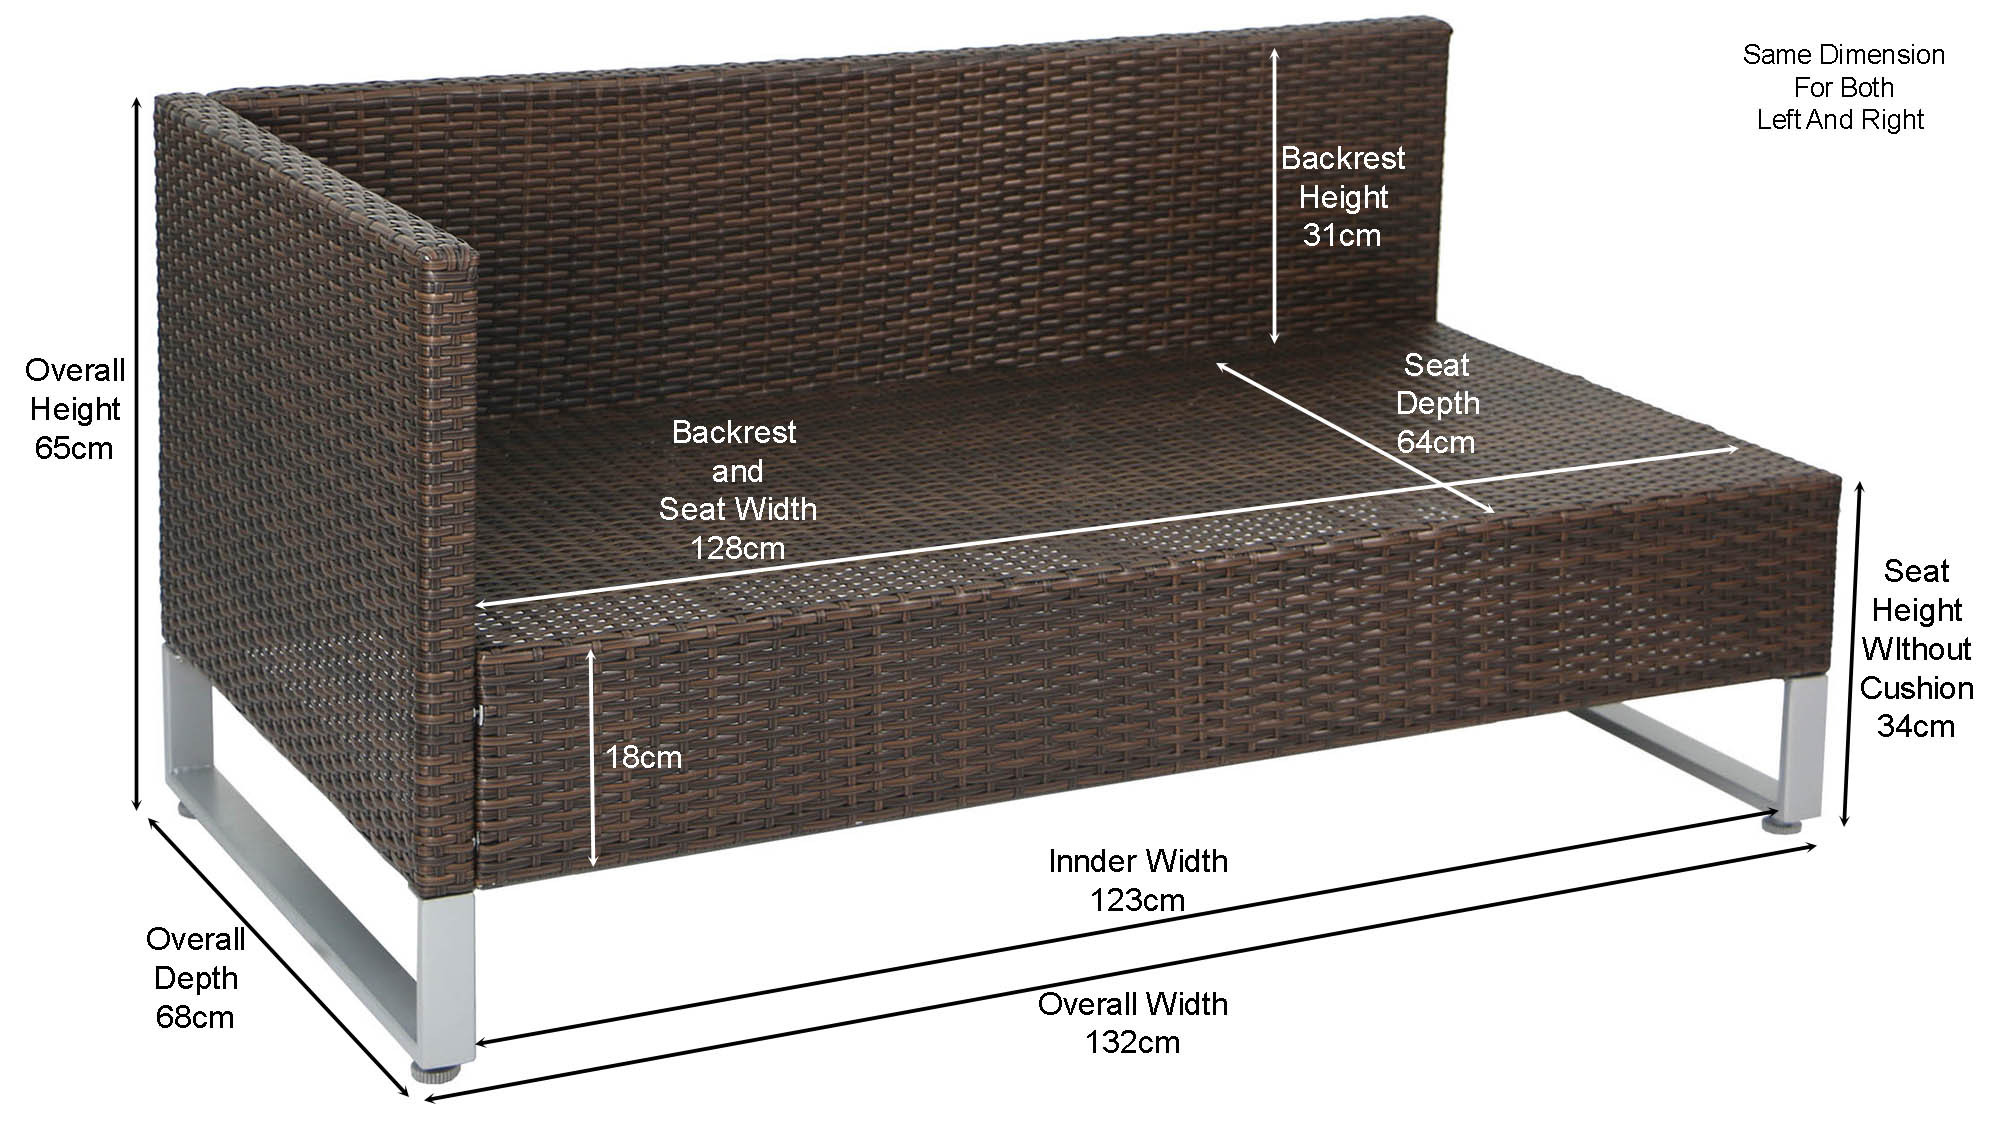 sofa seat height 60cm 3 piece set with recliner royal synthetic rattan outdoor storage box brown furniture home decor fortytwo